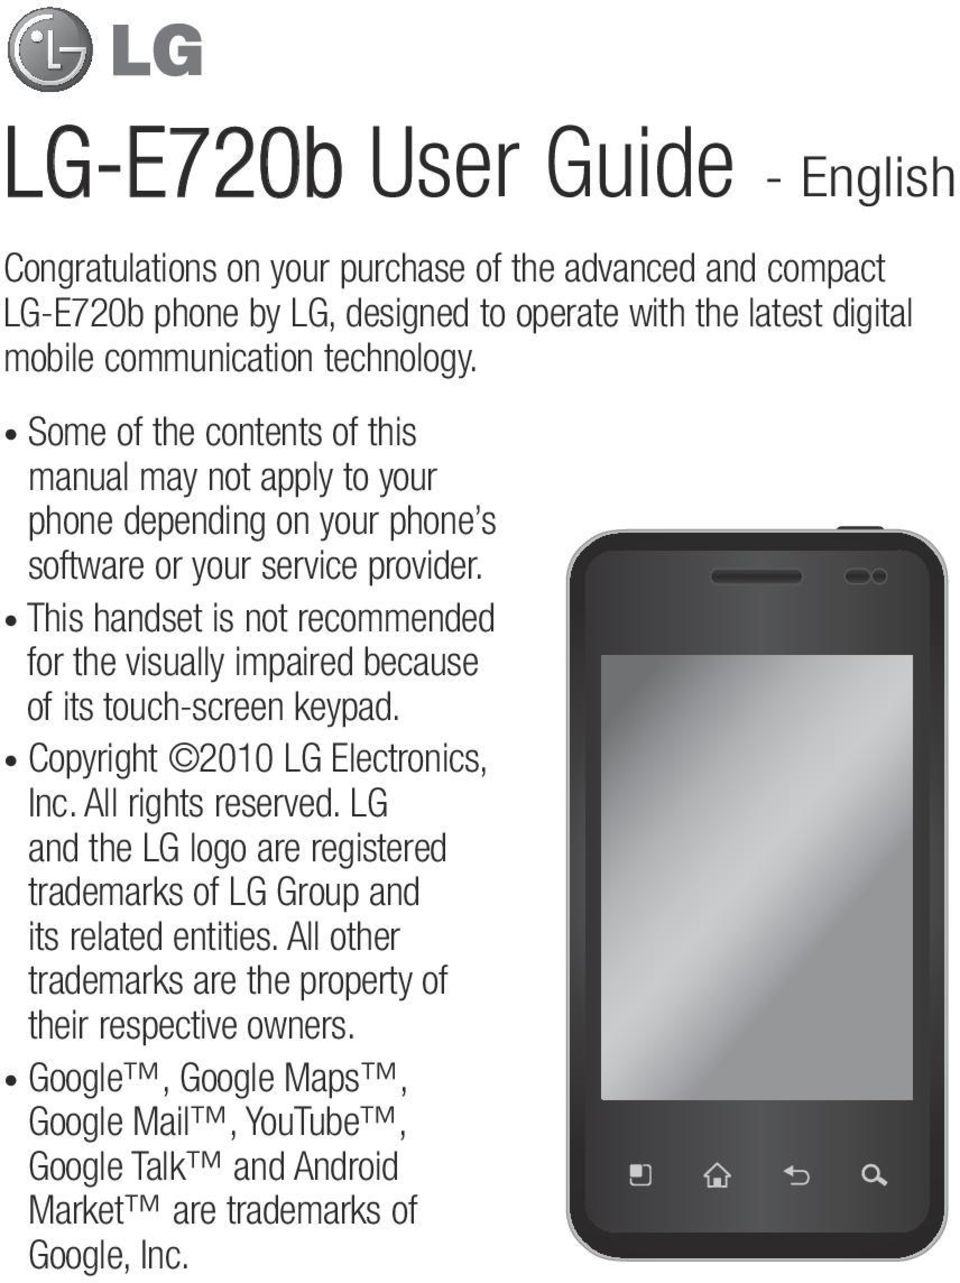 This handset is not recommended for the visually impaired because of its touch-screen keypad. Copyright 2010 LG Electronics, Inc. All rights reserved.